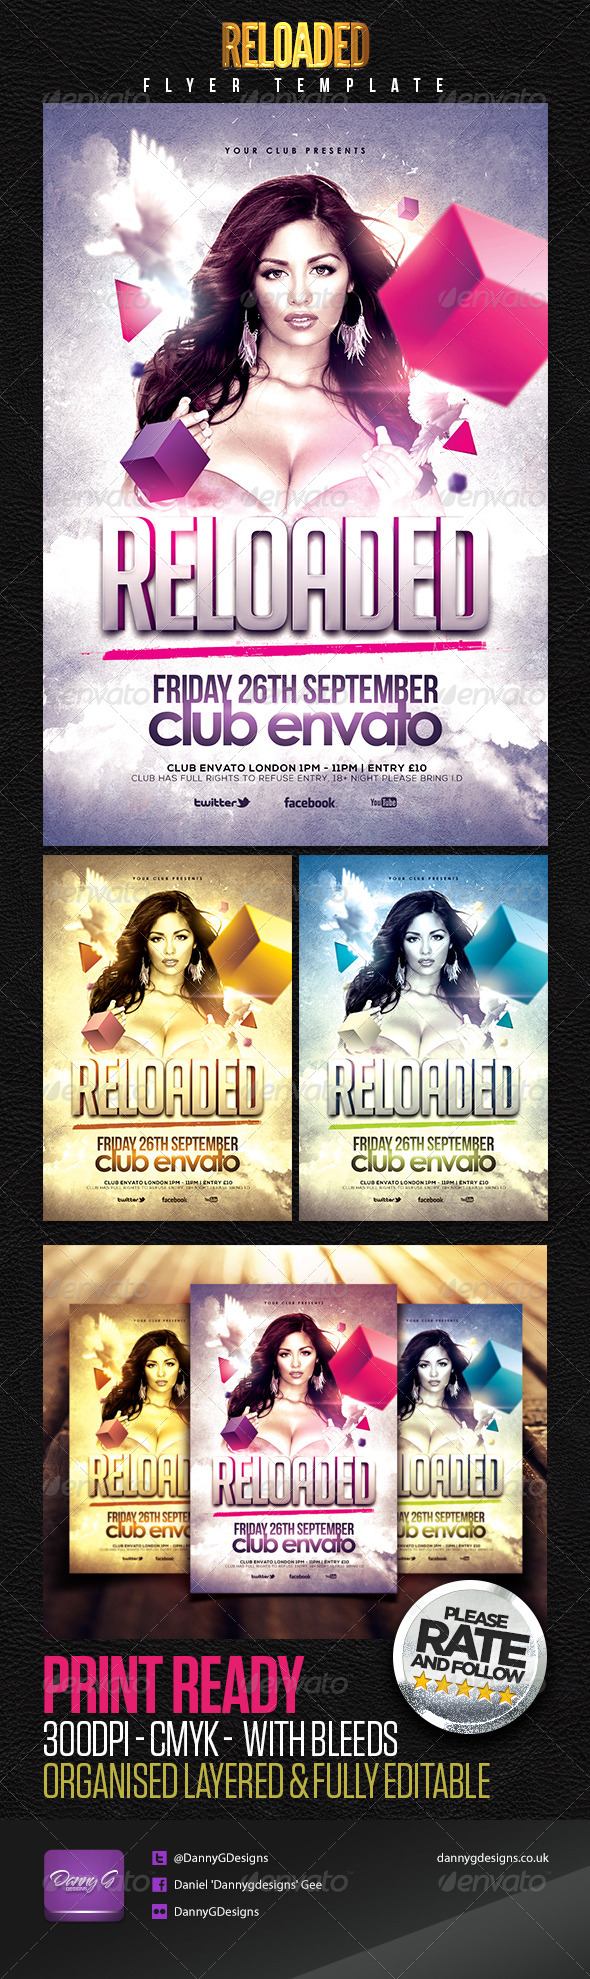 Reloaded Flyer Template - Clubs & Parties Events